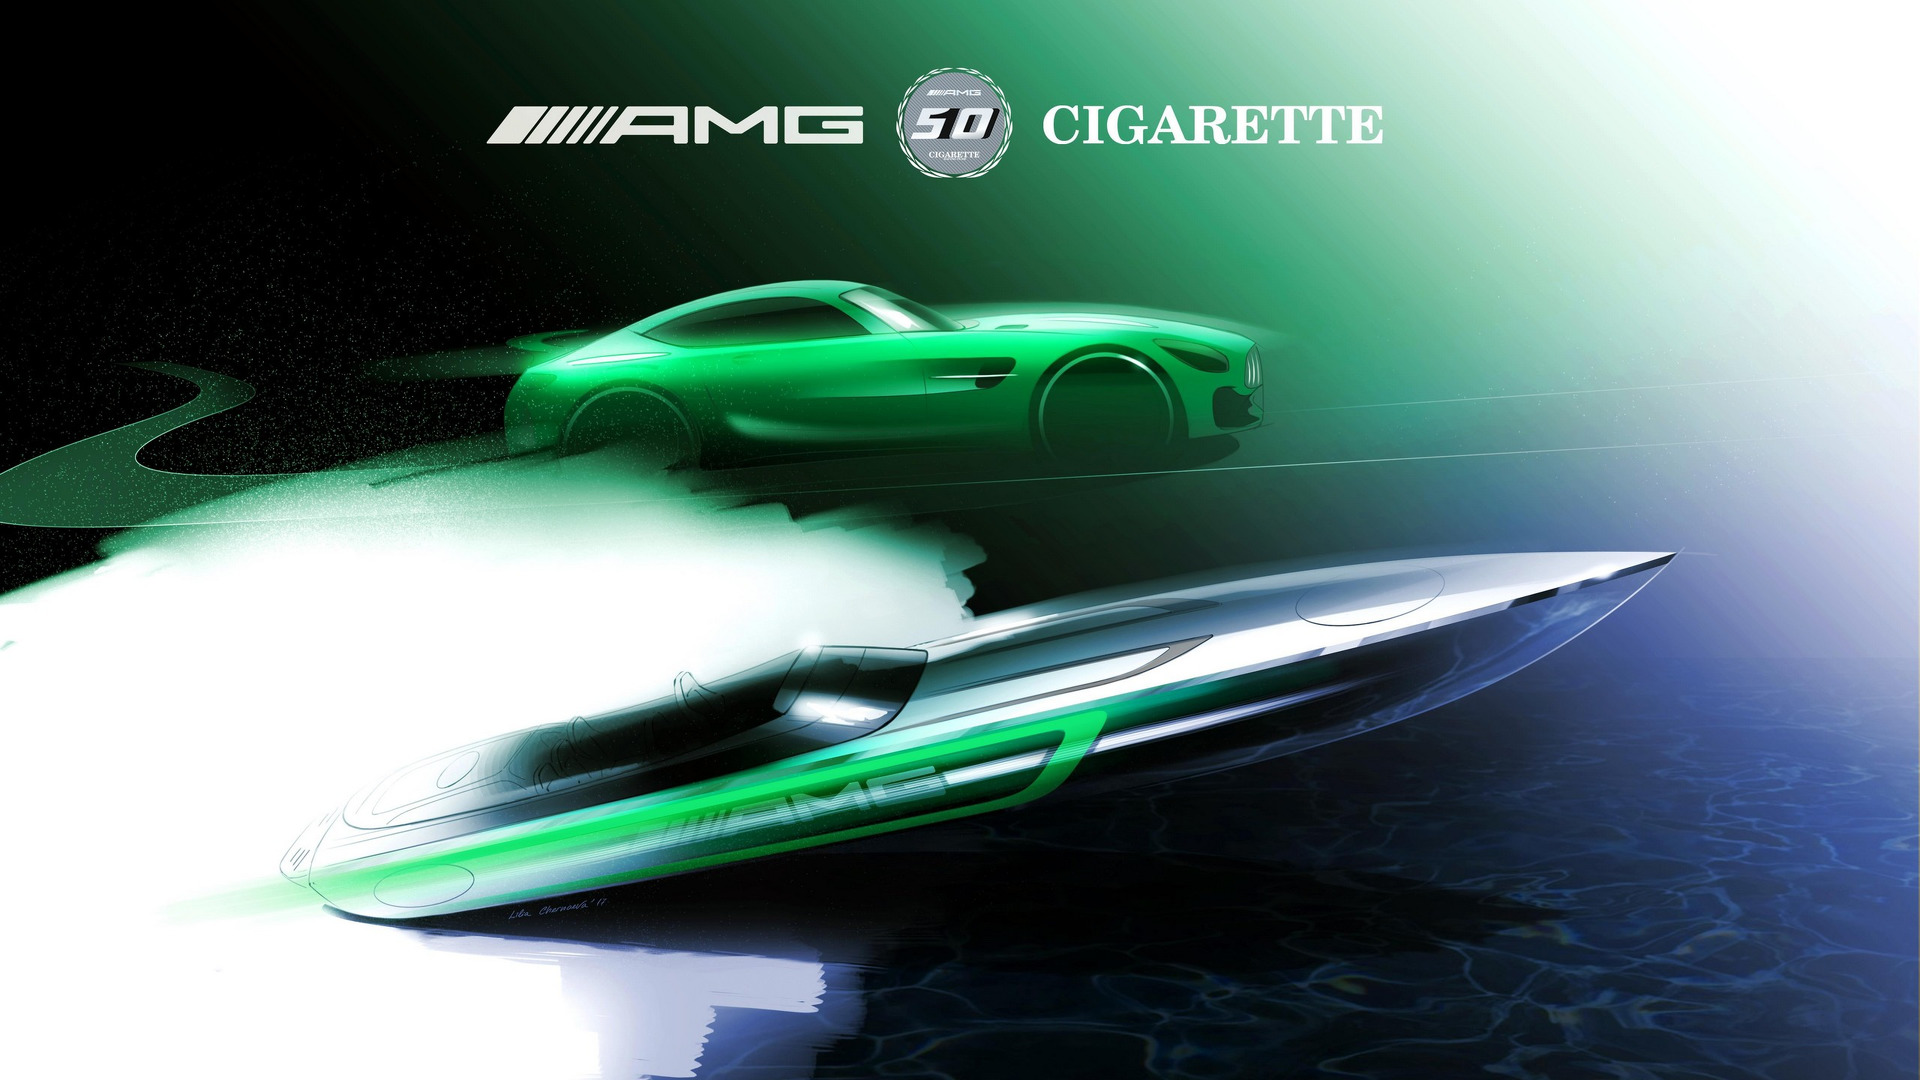 Mercedes-AMG and Cigarette Racing to unveil latest collaboration at the Miami International Boat Show